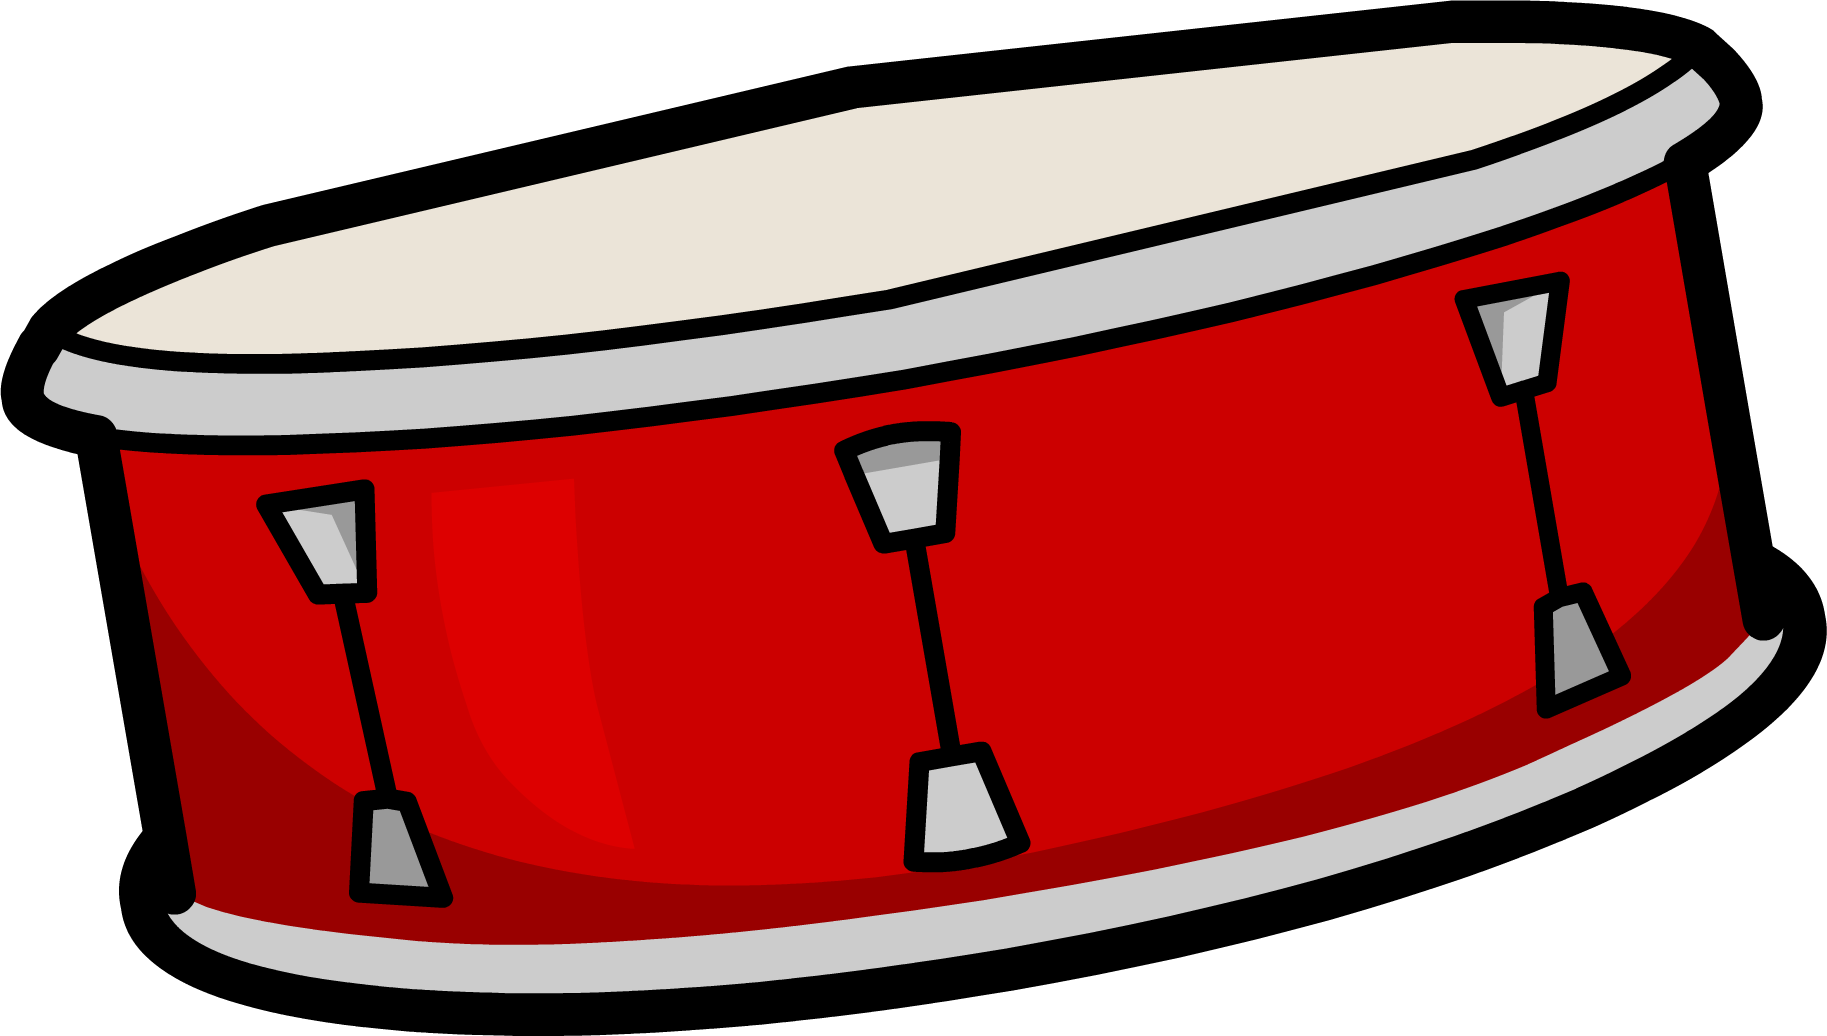 svg library Drum clipart. Club penguin free on.